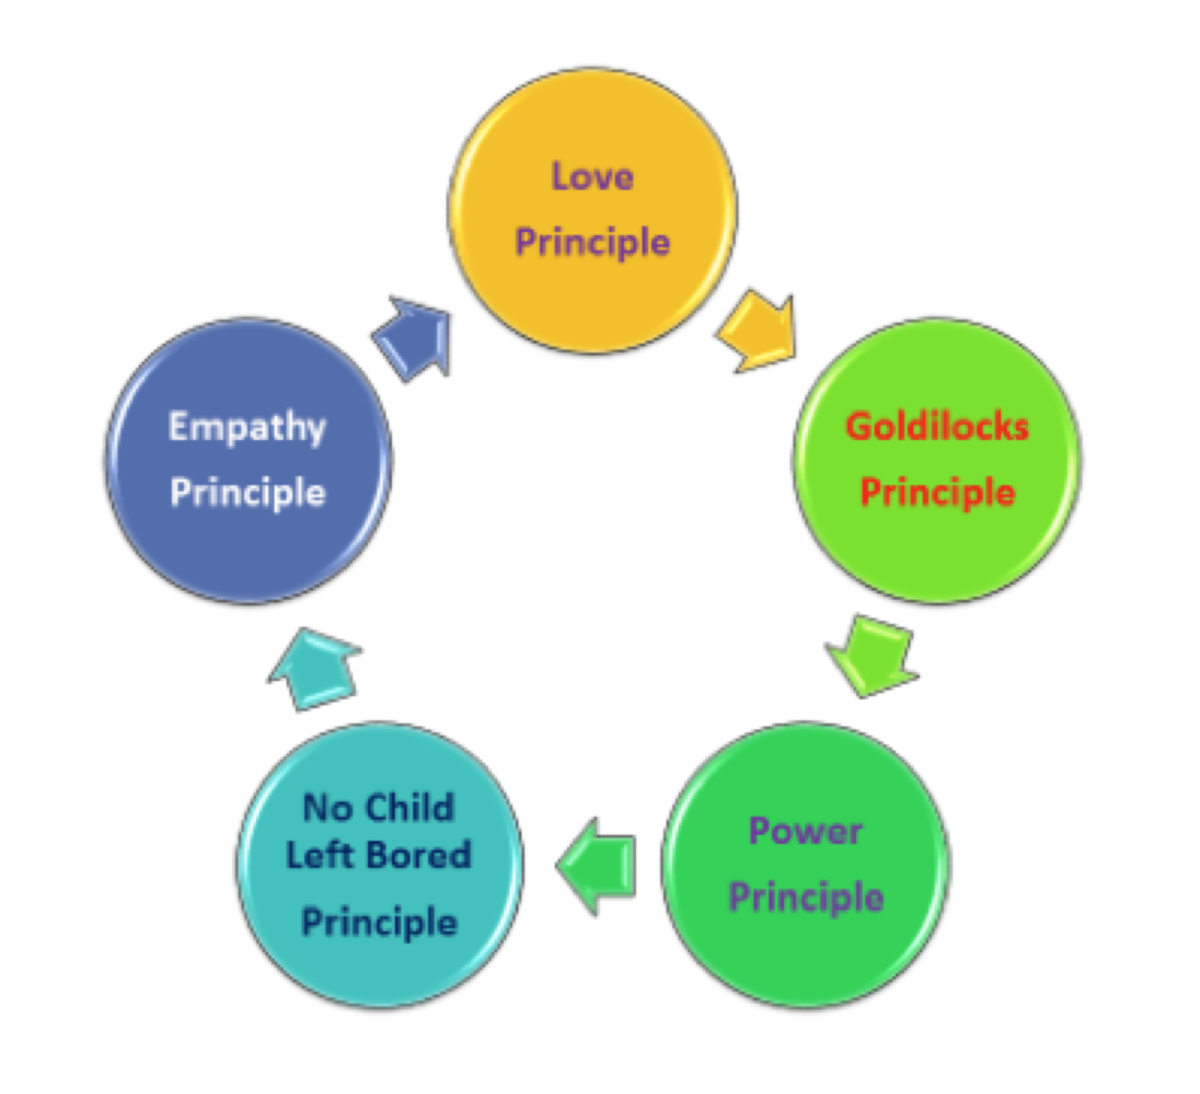 The Goldilocks Principle Meeting Needs >> Nurturing The Gifts Of Every Child Psychology Today Singapore